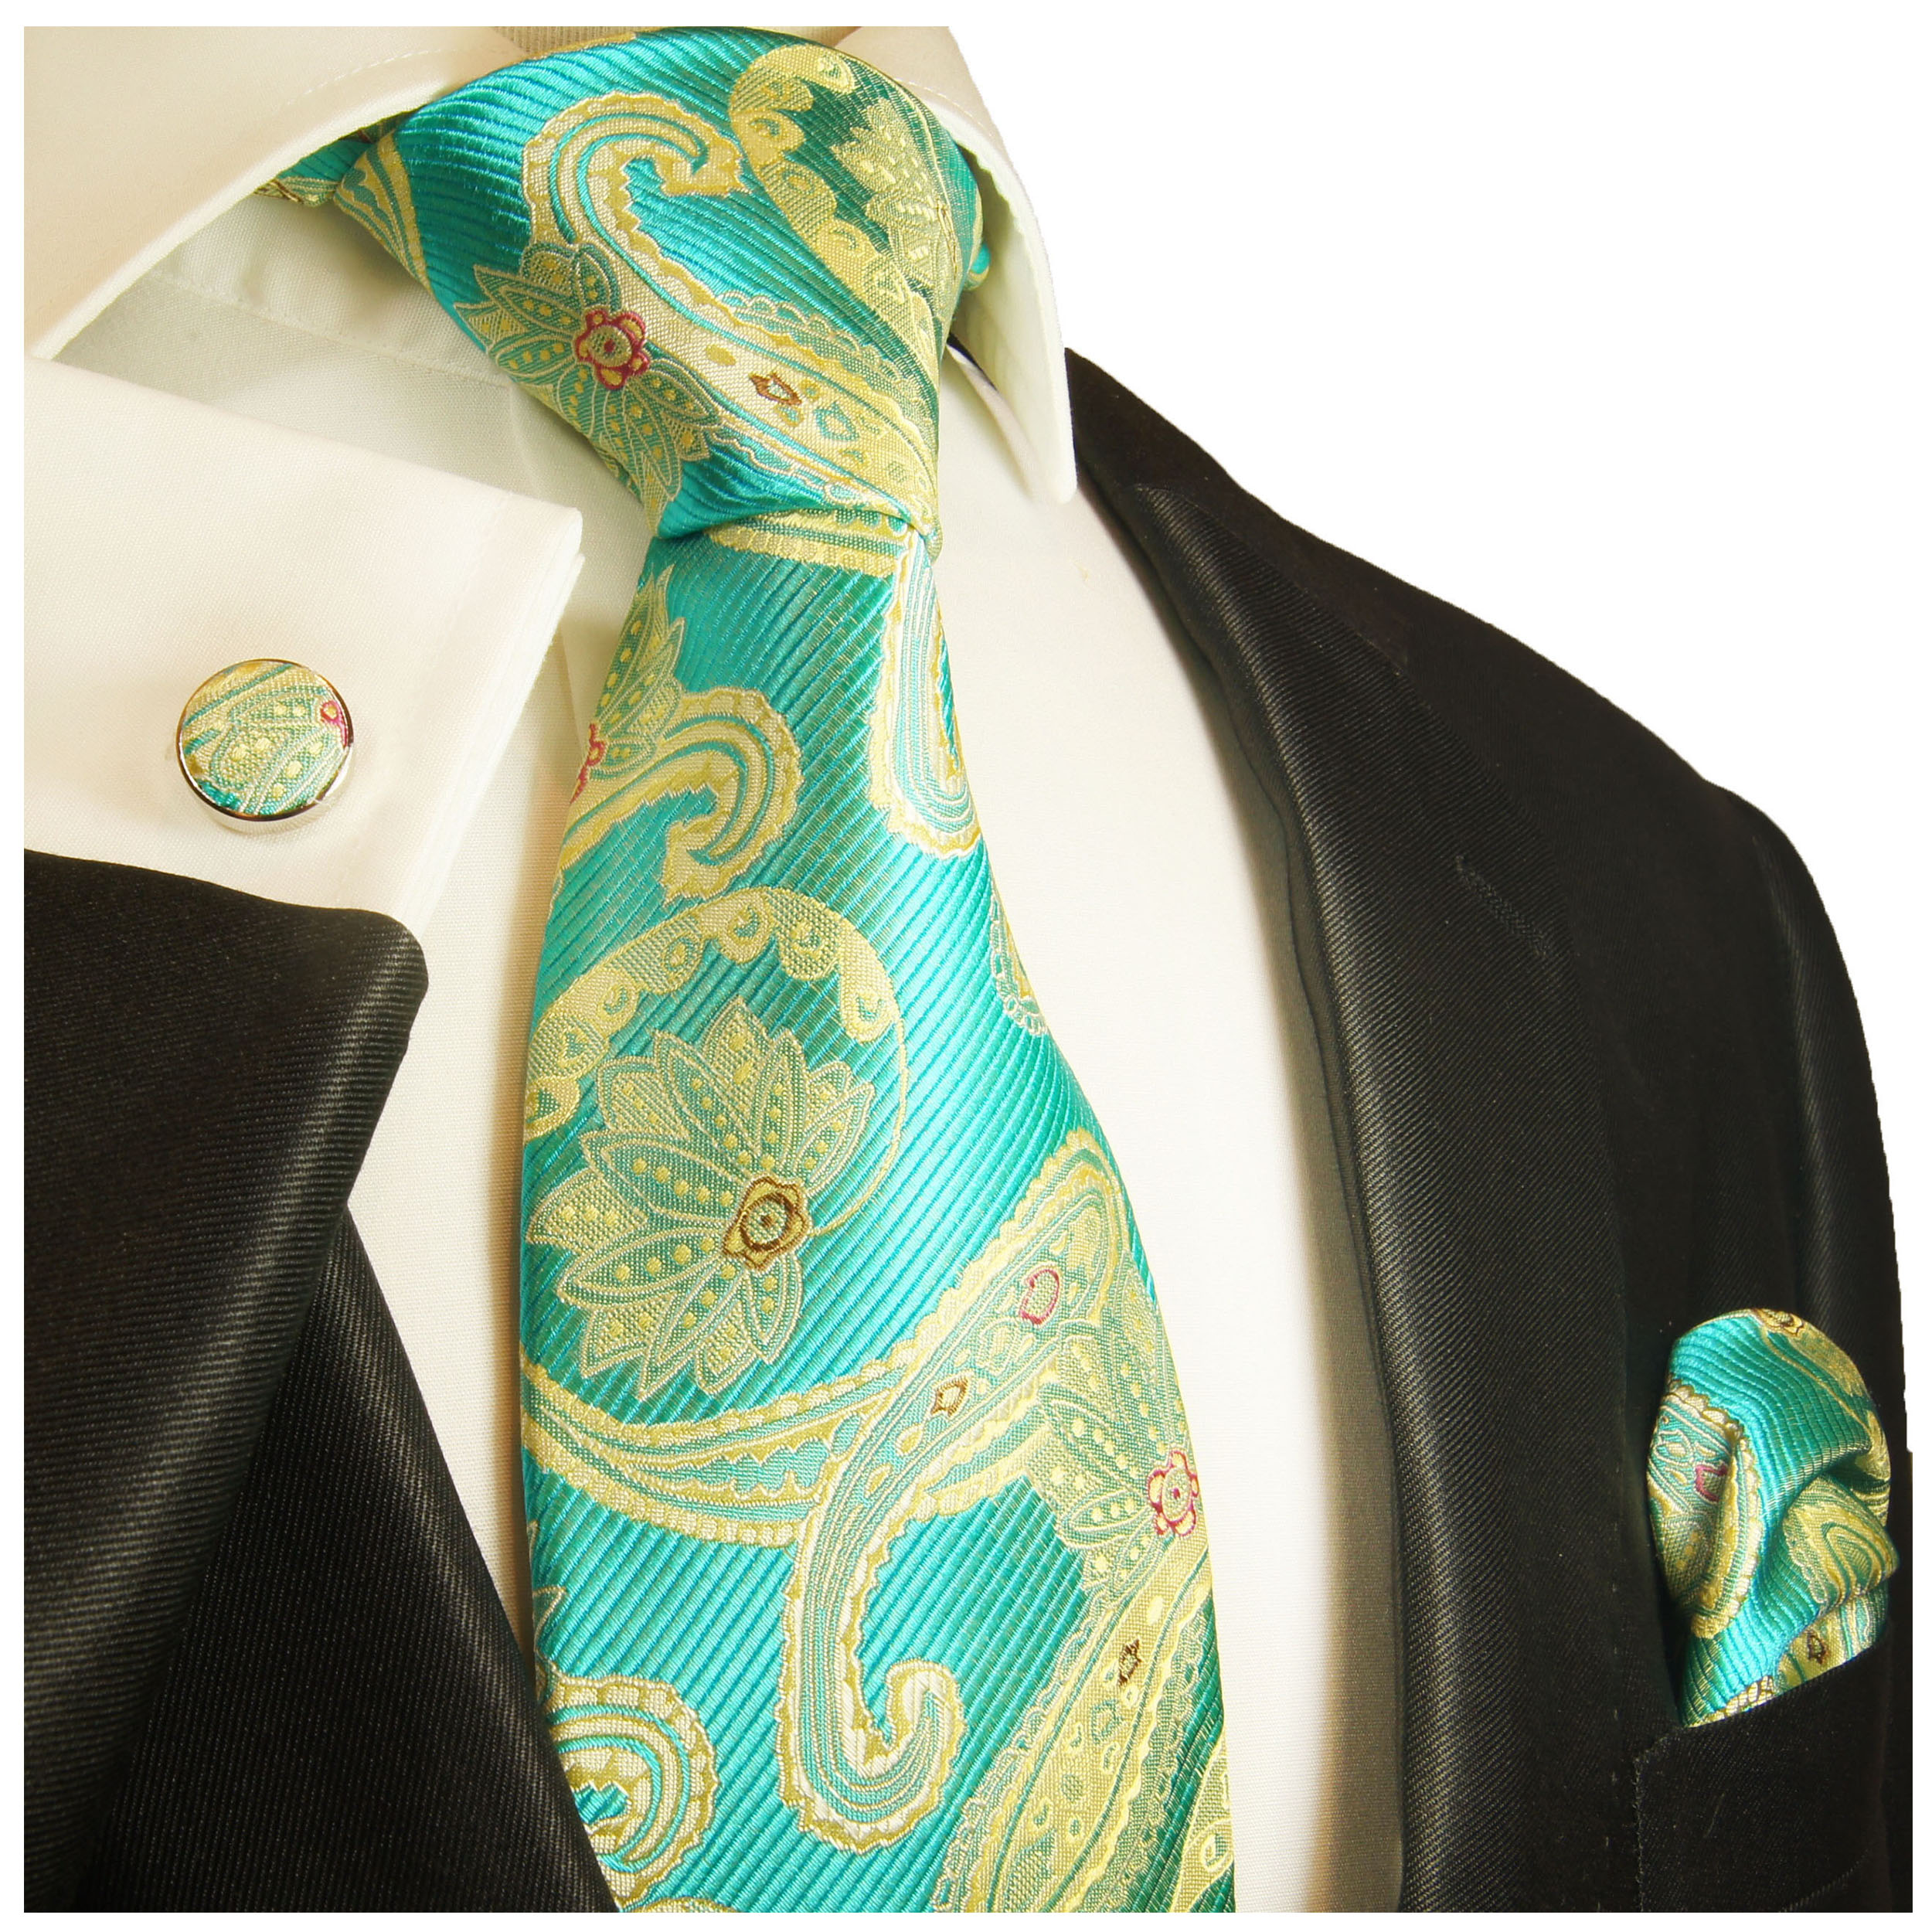 71b761f0f11 Turquoise tie and pocket square and cufflinks yellow paisley brocade 2024